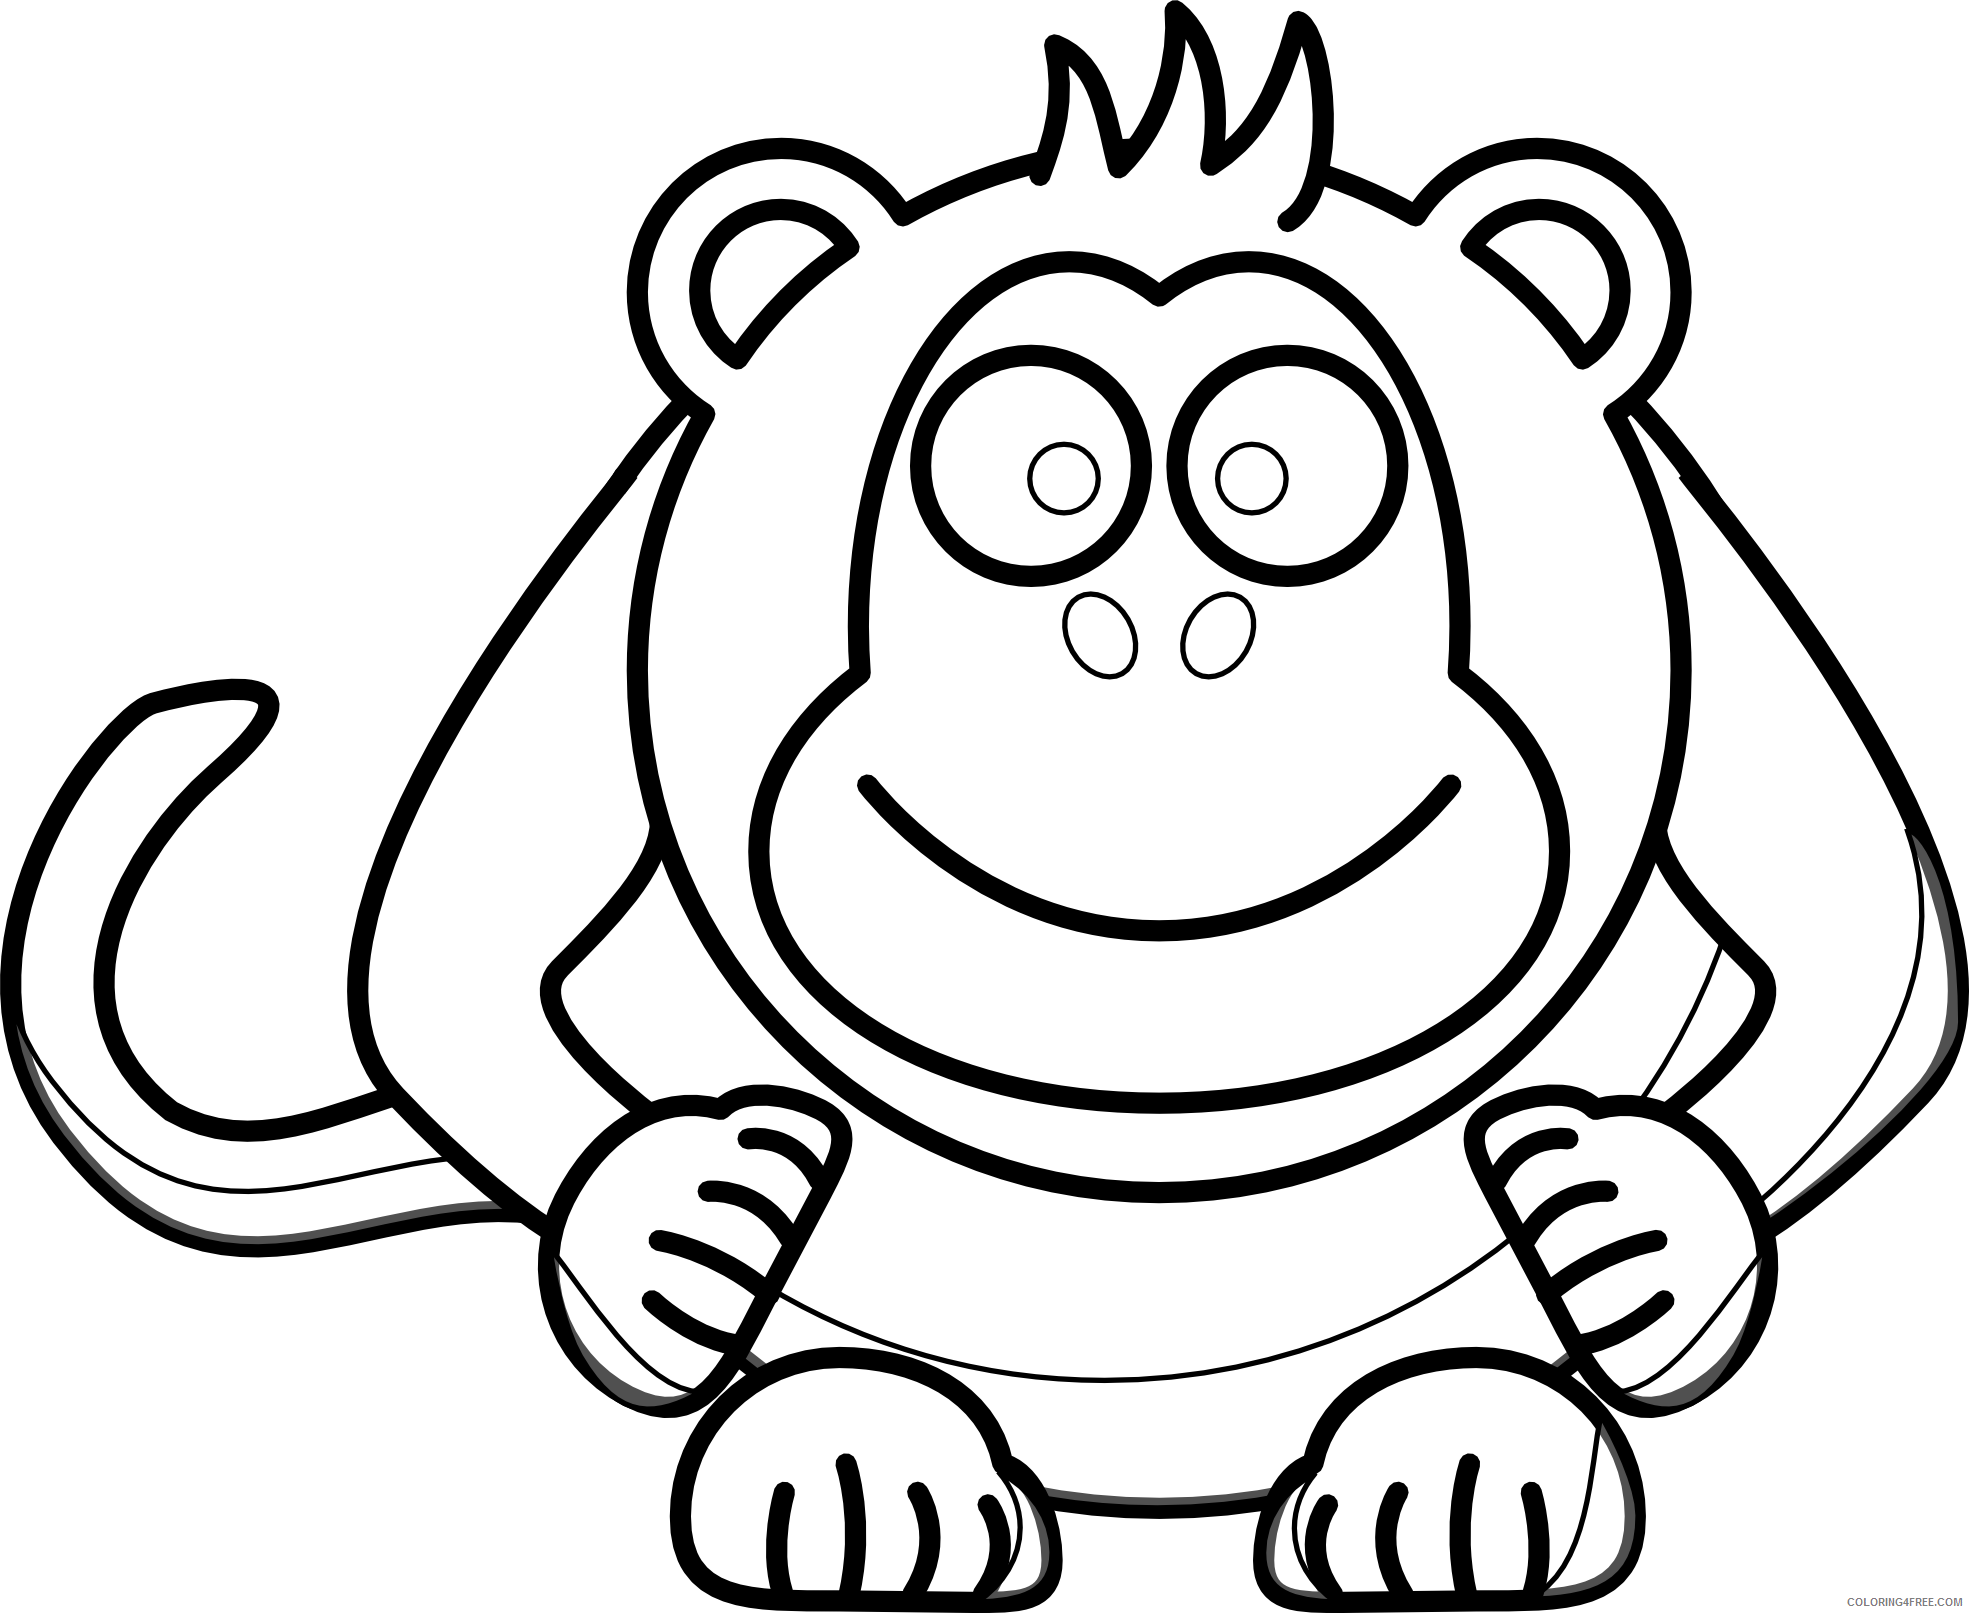 Baby Monkey Coloring Pages baby monkey face clip art Printable Coloring4free